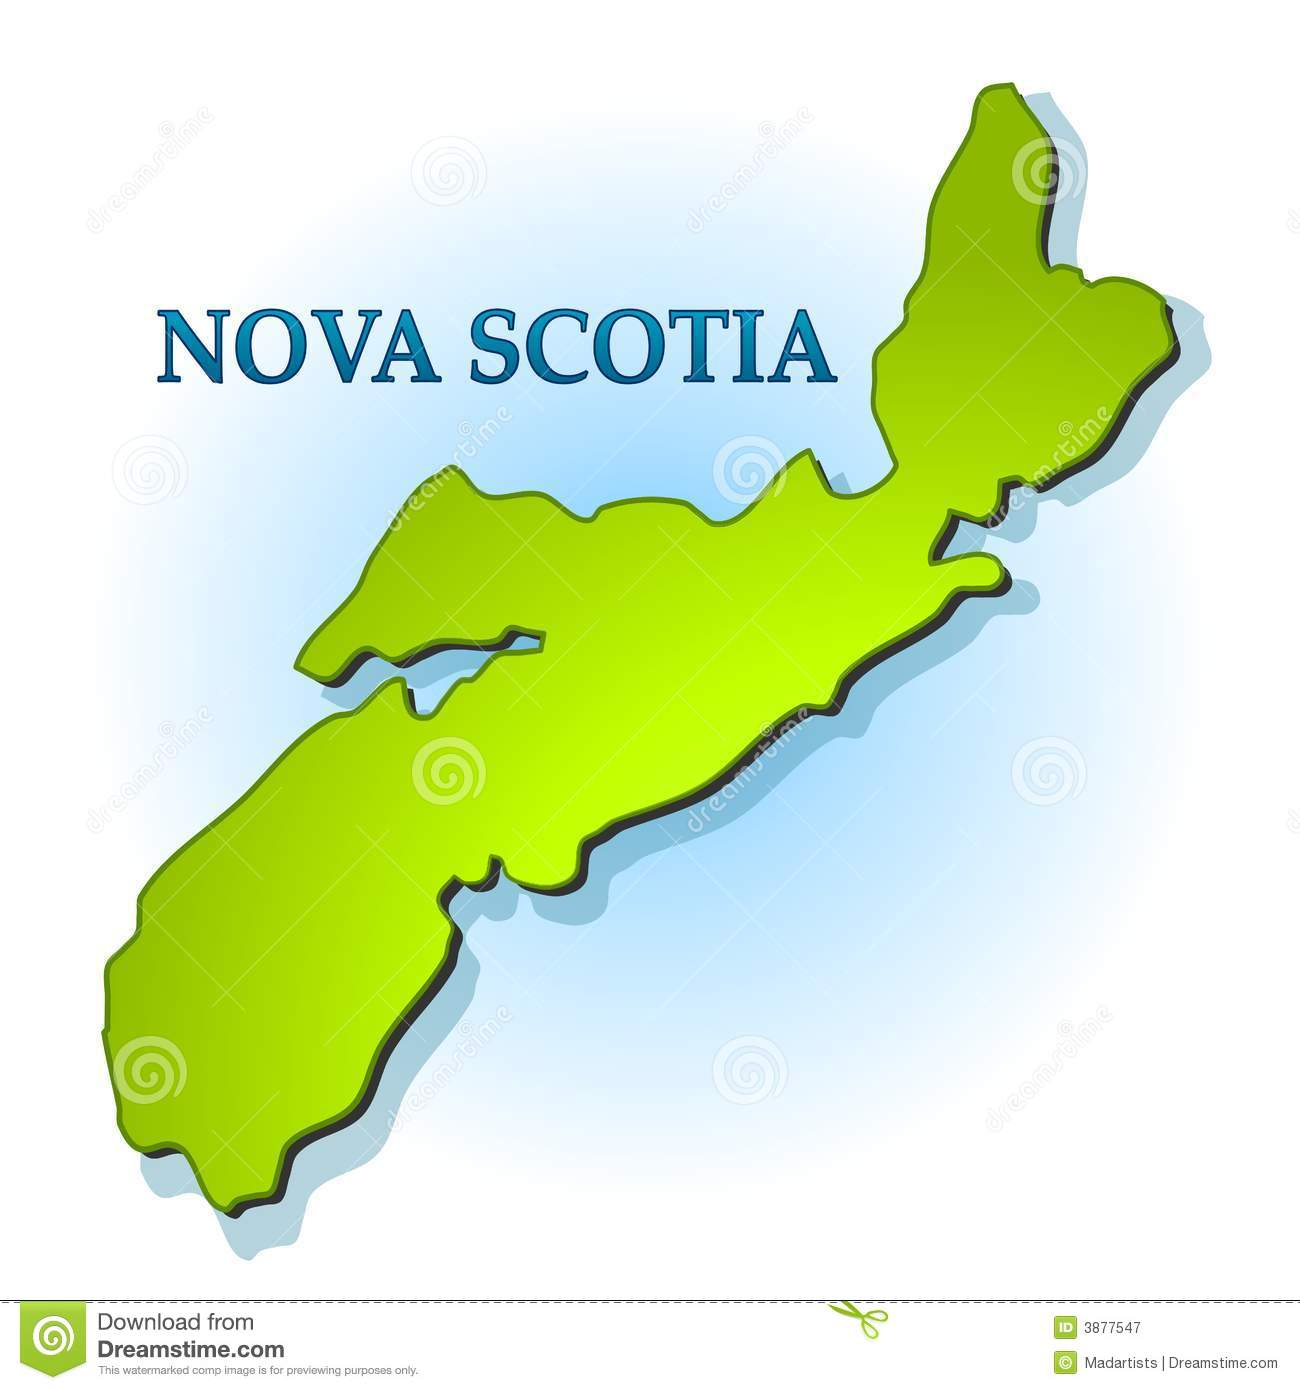 google maps canada provinces with Royalty Free Stock Photography Nova Scotia Map Outline Isolated Image3877547 on Index in addition Mazar E Sharif Map further E5 9C B0 E7 90 83 E4 B8 BA E4 BB 80 E4 B9 88 E6 9C 89 E7 99 BD E5 A4 A9 E9 BB 91 E5 A4 9C additionally Eritrea Maps further Carte Sardaigne.